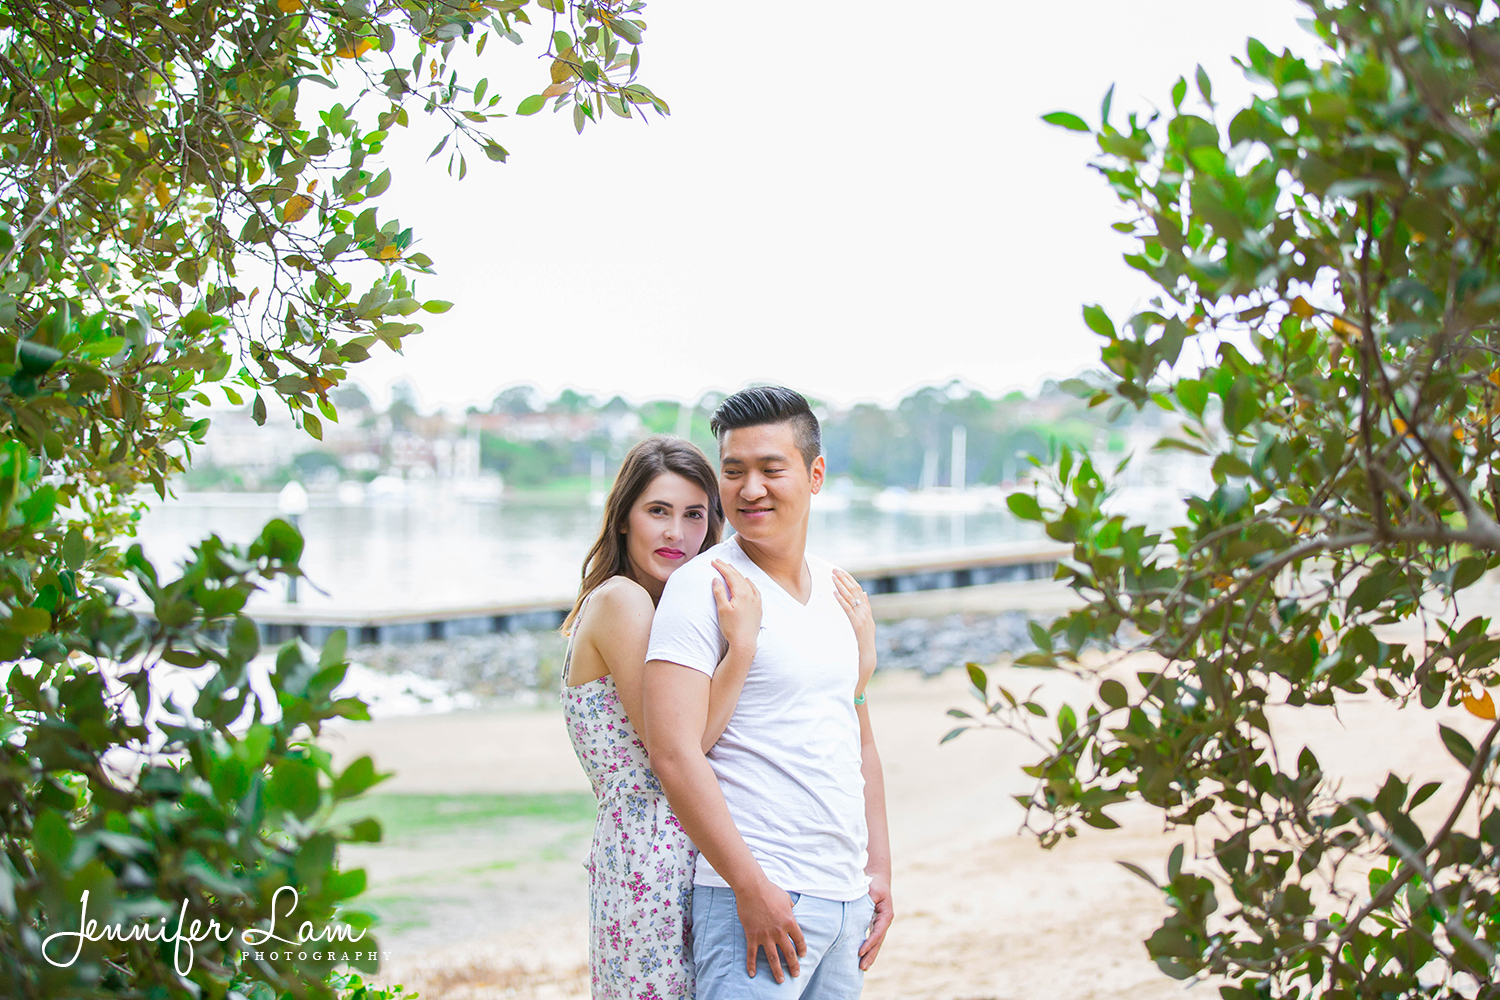 Sydney Pre-Wedding Photography - Jennifer Lam Photography (17).jpg